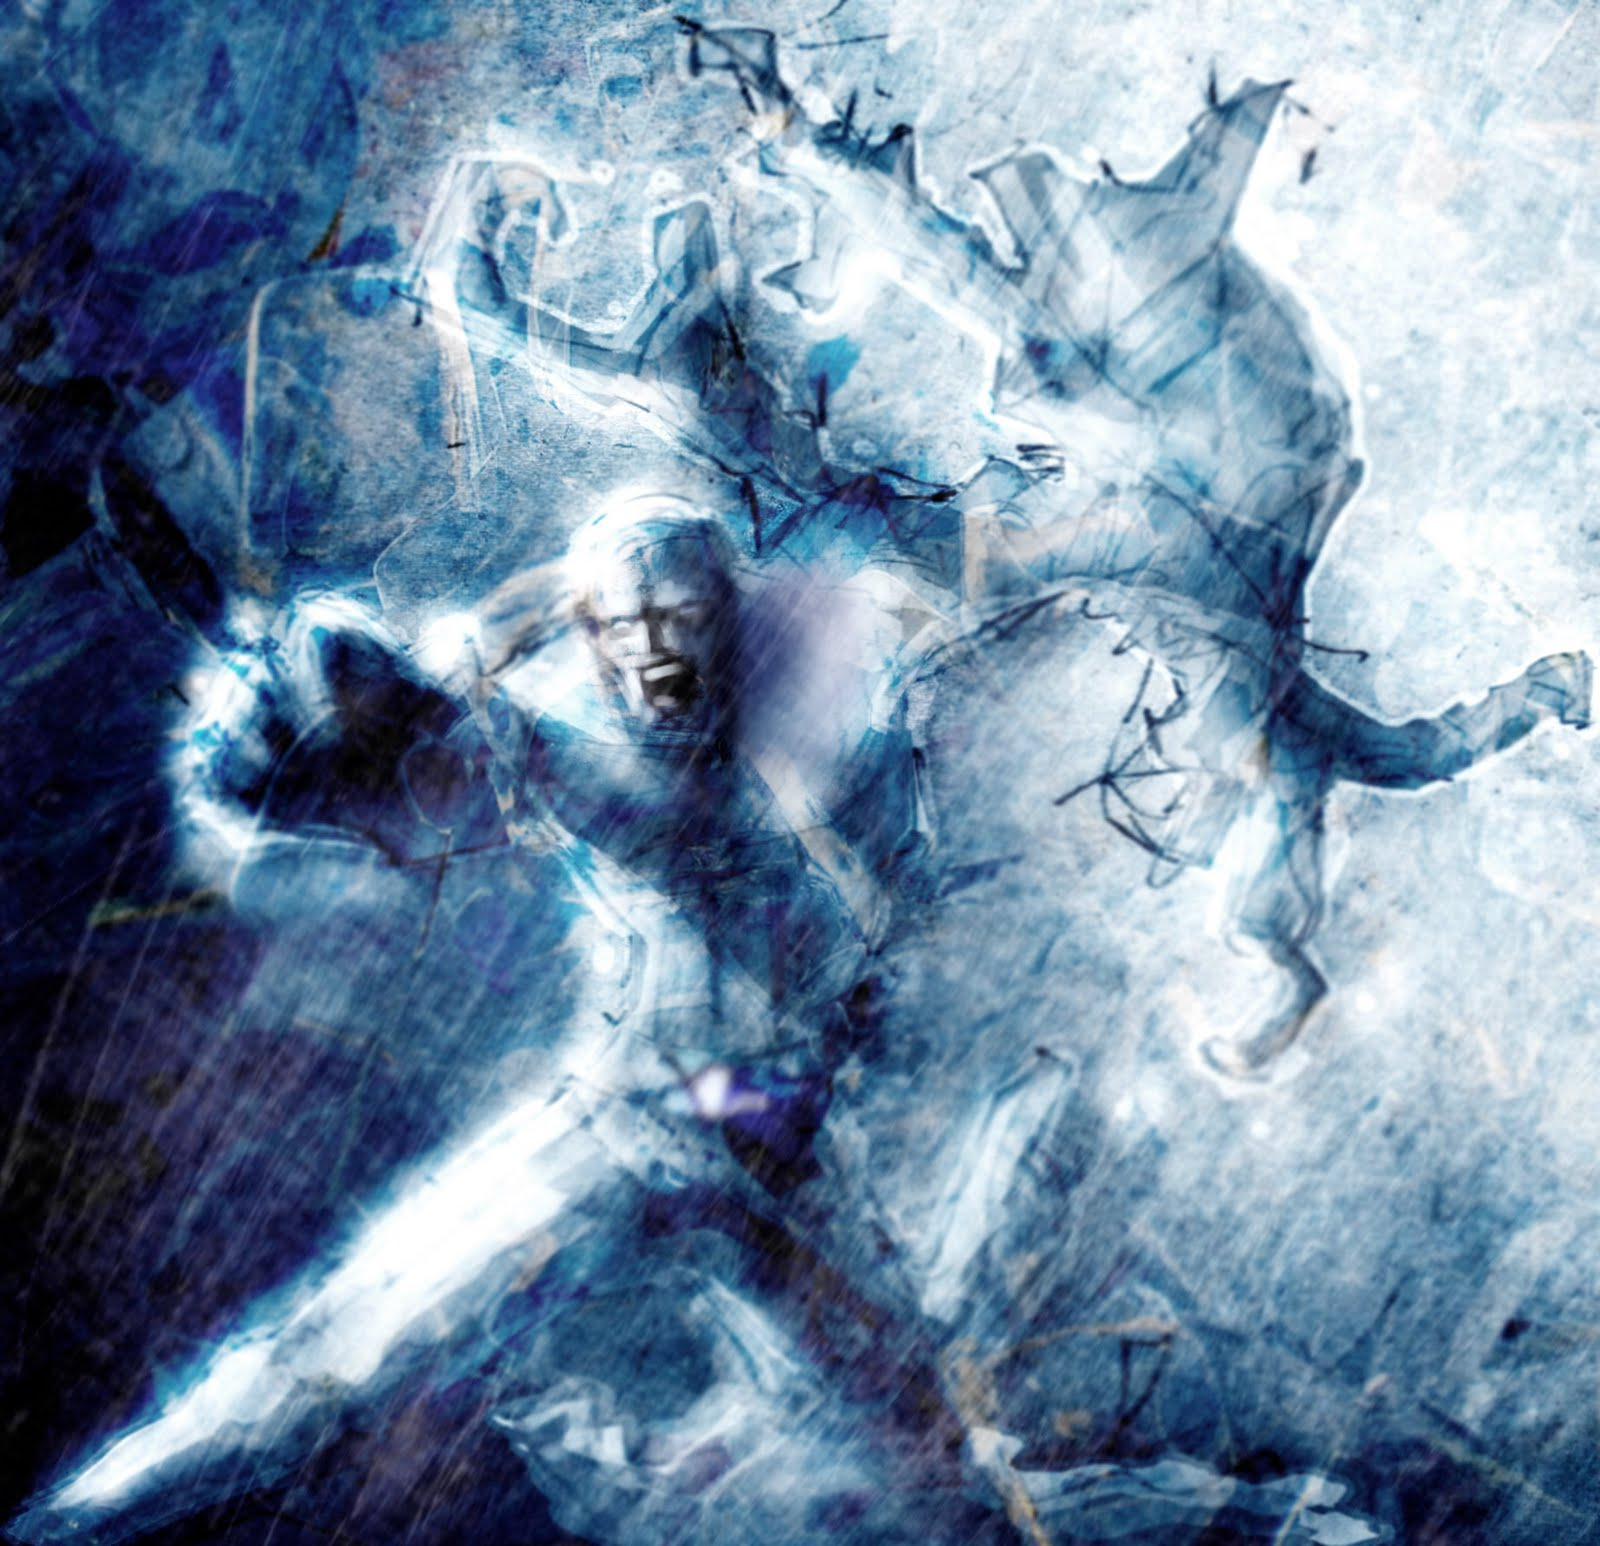 DrawLAAHHH: X Men: Iceman Unleashed concept art